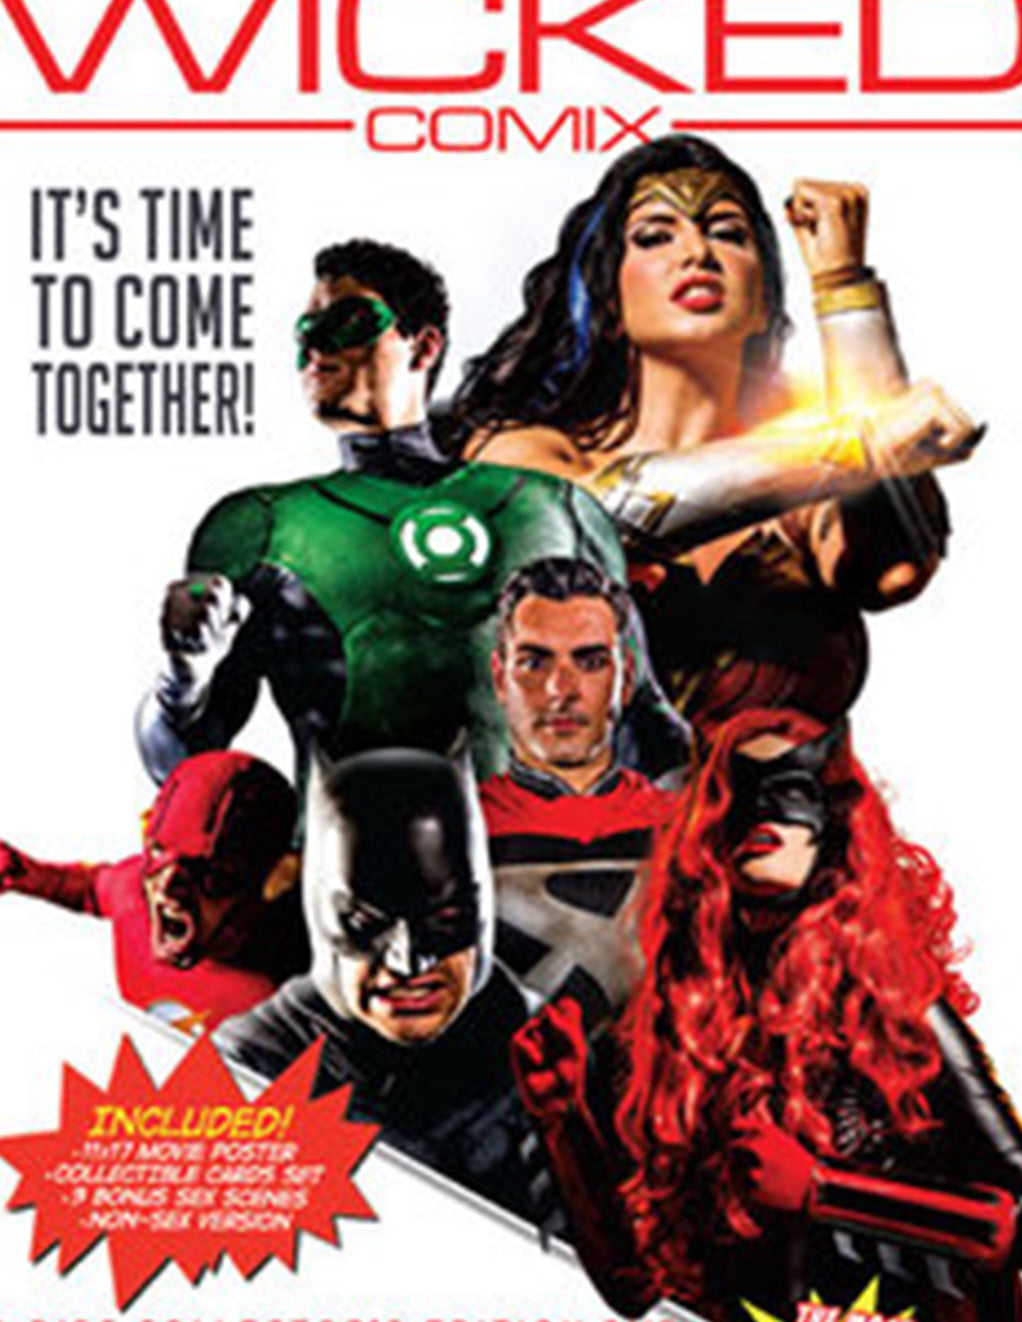 Wicked Comix Justice League XXX (2 Disc set) - Adult DVD - Mainstream